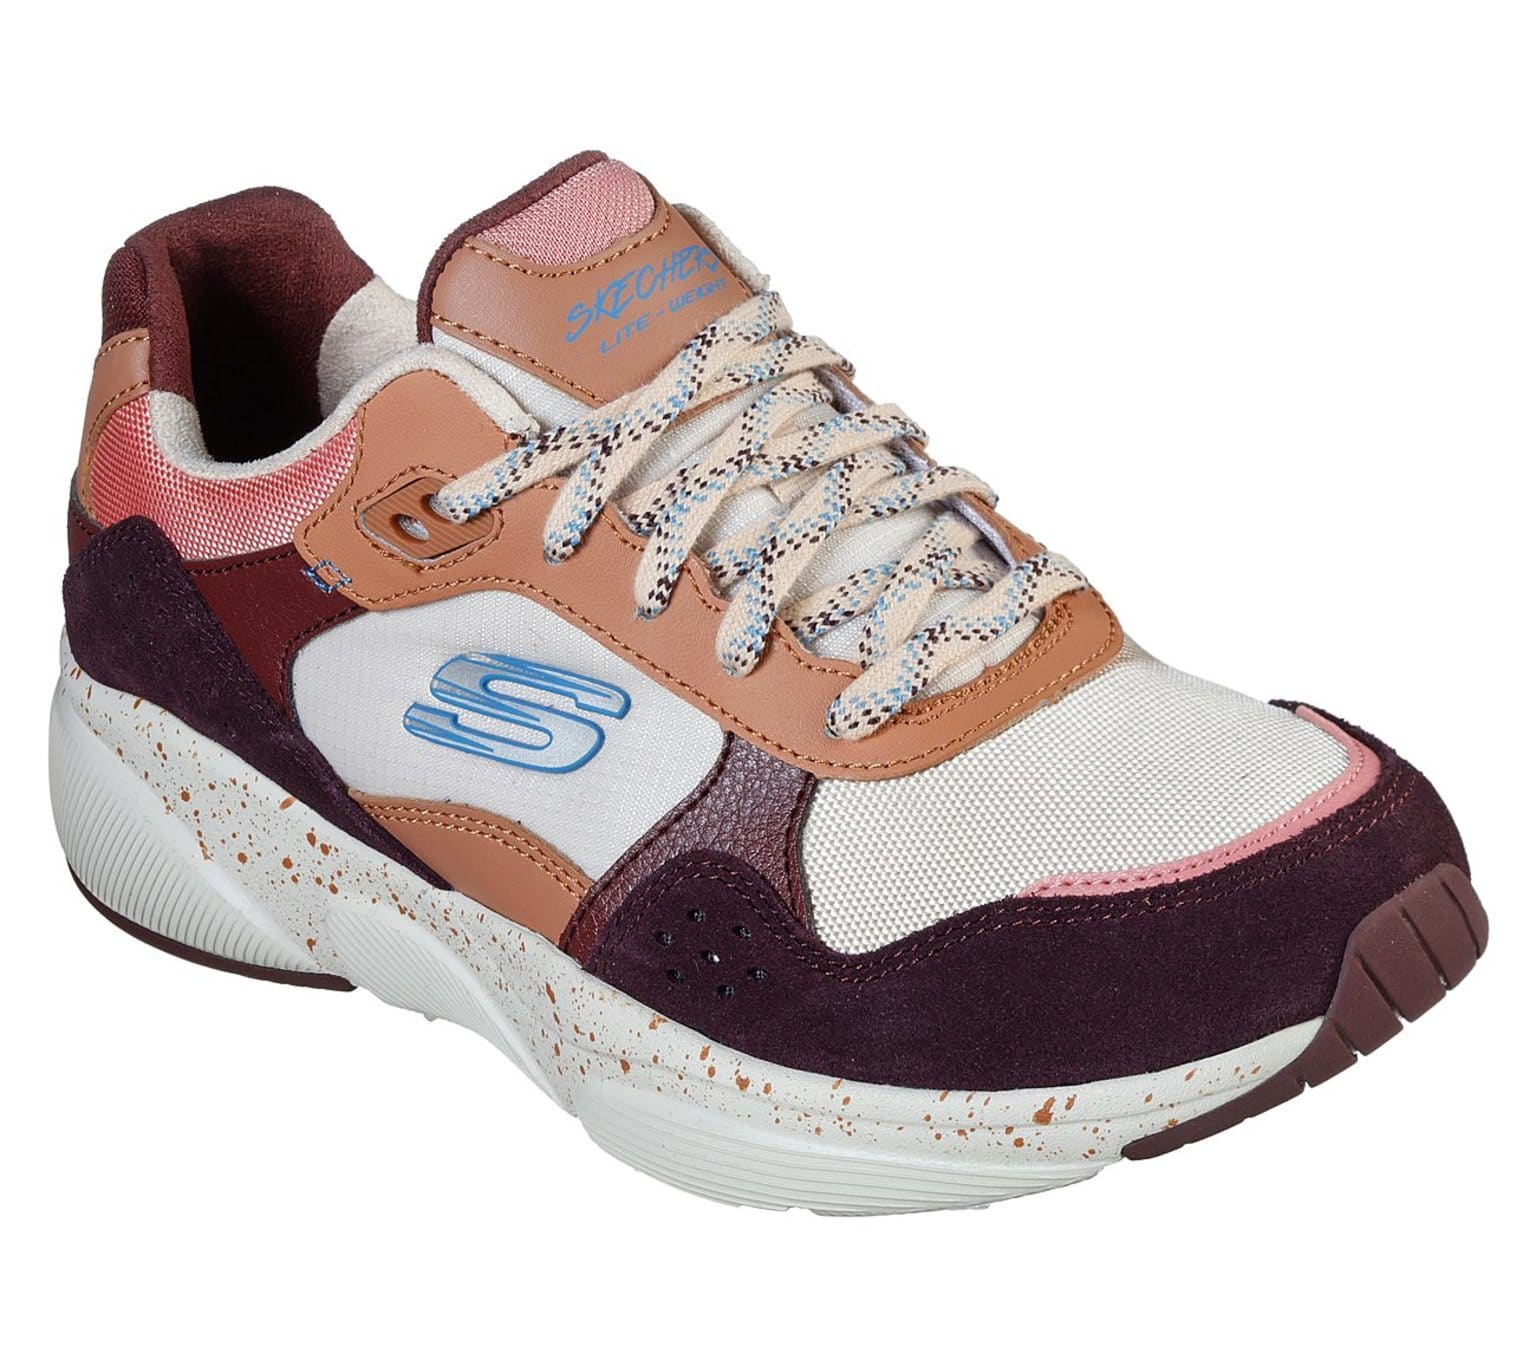 Skechers Meridian Daily Luck Womens Sporty sko med suveræn